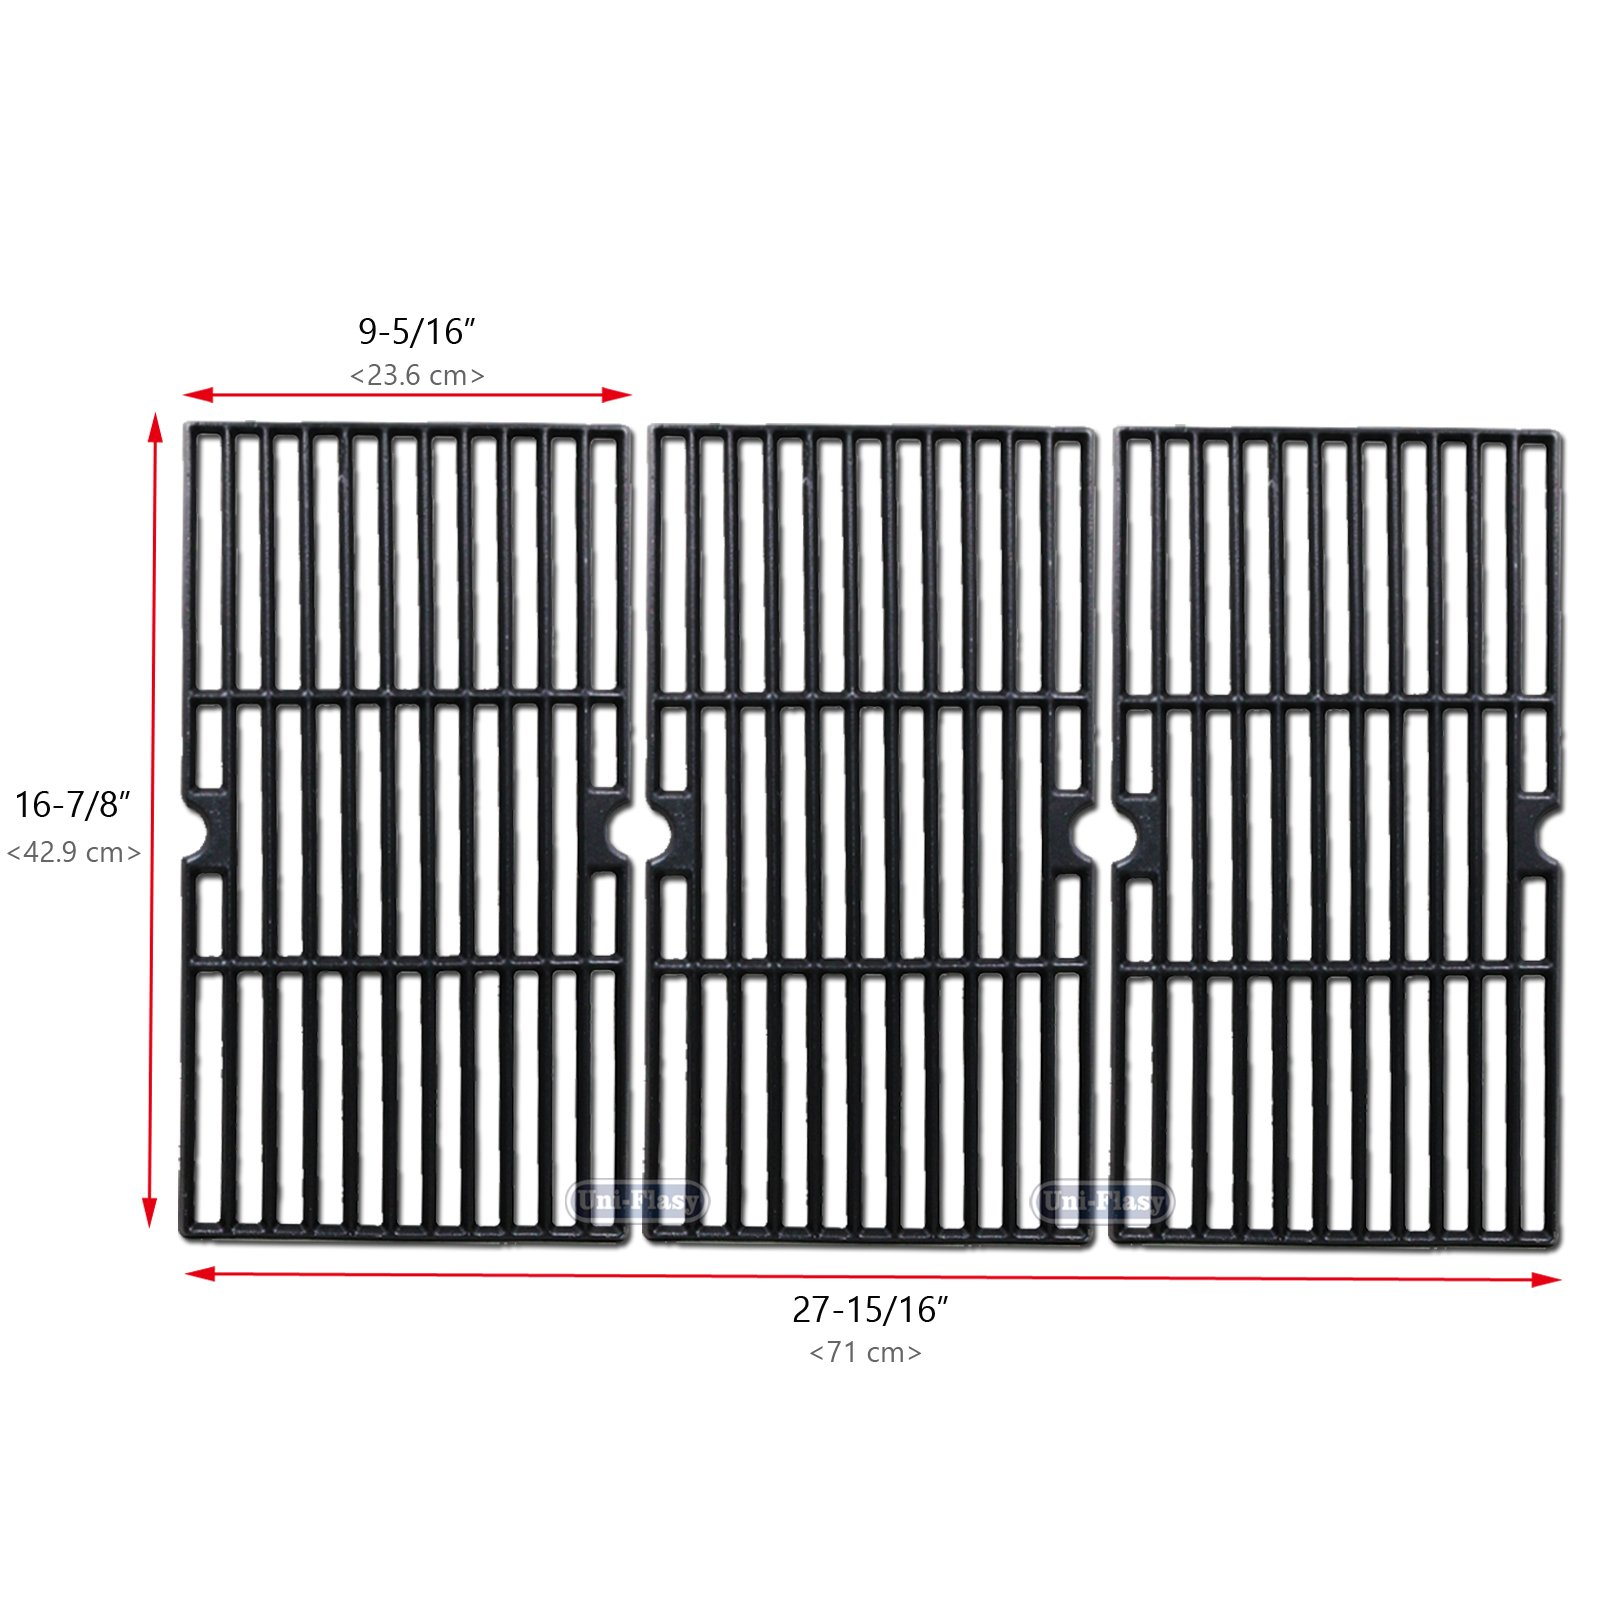 Cast Iron Grill Cooking Grid Grate Replacement Parts for Charbroil 463420508, 463420509, 463420511, 463436213, 463436214, 463436215, 463440109, 463441312, 463441514, 463461613, Thermos 461442114